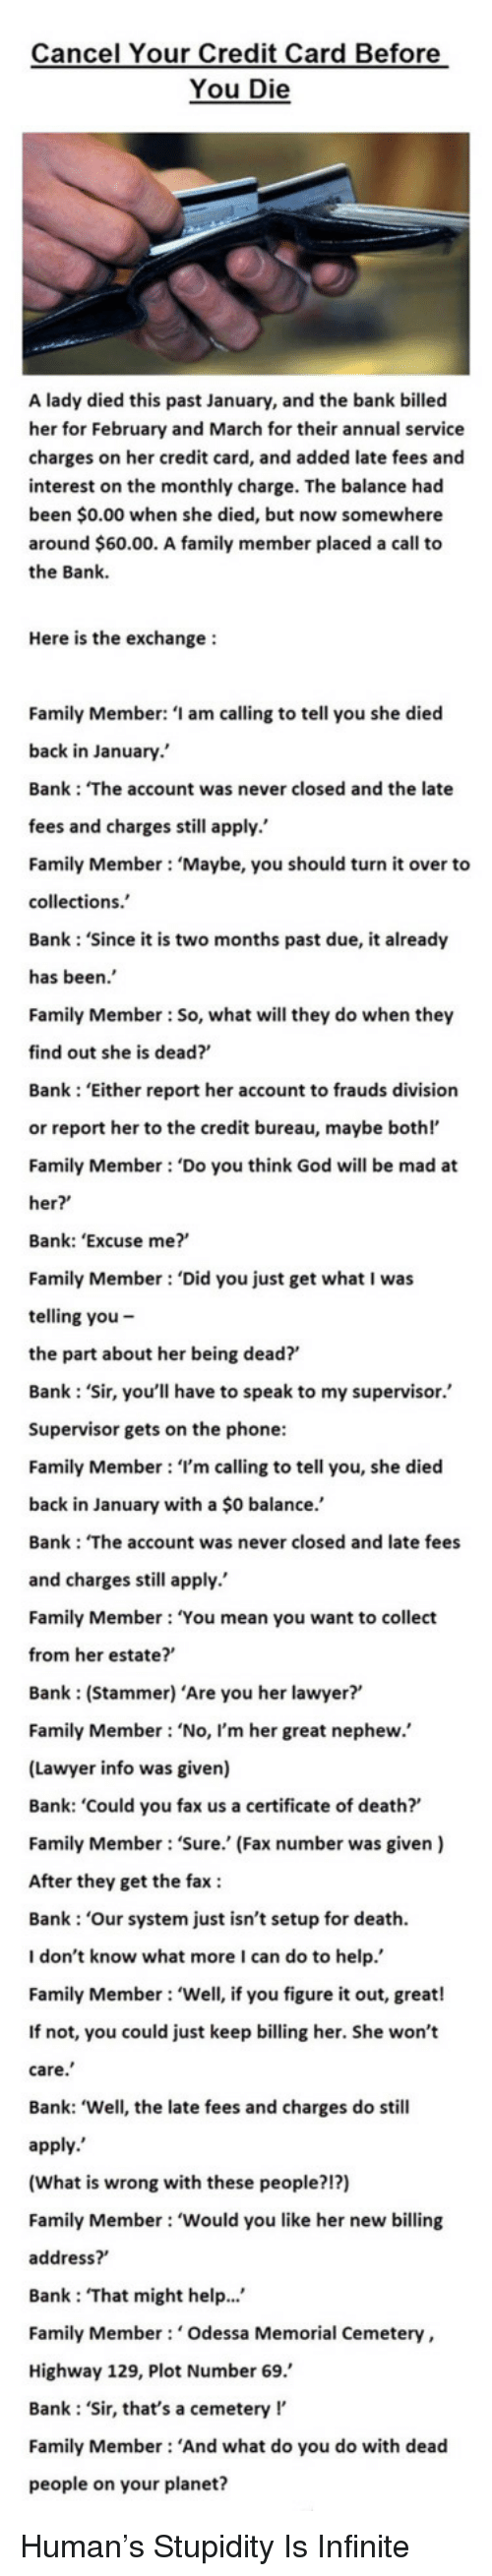 Stammering: Cancel Your Credit Card Before  You Die  A lady died this past January, and the bank billed  her for February and March for their annual service  charges on her credit card, and added late fees and  interest on the monthly charge. The balance had  been $0.00 when she died, but now somewhere  around $60.00. A family member placed a call to  the Bank.  Here is the exchange  Family Member: 'I am calling to tell you she died  back in January.'  Bank: 'The account was never closed and the late  fees and charges still apply.  Family Member: 'Maybe, you should turn it over to  collections.  Bank: 'Since it is two months past due, it already  has been.  Family Member: So, what will they do when they  find out she is dead?  Bank 'Either report her account to frauds division  or report her to the credit bureau, maybe bothl'  Family Member: 'Do you think God will be mad at  her?  Bank: 'Excuse me?'  Family Member 'Did you just get what I was  telling you -  the part about her being dead?  Bank: 'Sir, you'll have to speak to my supervisor.  Supervisor gets on the phone  Family Member: 'I'm calling to tell you, she died  back in January with a $0 balance.'  Bank: 'The account was never closed and late fees  and charges still apply.  Family Member: 'You mean you want to collect  from her estate?'  Bank (Stammer) 'Are you her lawyer?'  Family Member 'No, I'm her great nephew.  (Lawyer info was given)  Bank: 'Could you fax us a certificate of death?  Family Member: 'Sure. (Fax number was given)  After they get the fax  Bank: 'Our system just isn't setup for death.  I don't know what more I can do to help  Family Member: 'Well, if you figure it out, great!  If not, you could just keep billing her. She won't  care  Bank: 'Well, the late fees and charges do still  apply.  (What is wrong with these people?!?)  Family Member: 'Would you like her new billing  address?  Bank 'That might help...  Family Member: 'Odessa Memorial Cemetery,  Highway 129, Plot Number 69.'  Bank Sir